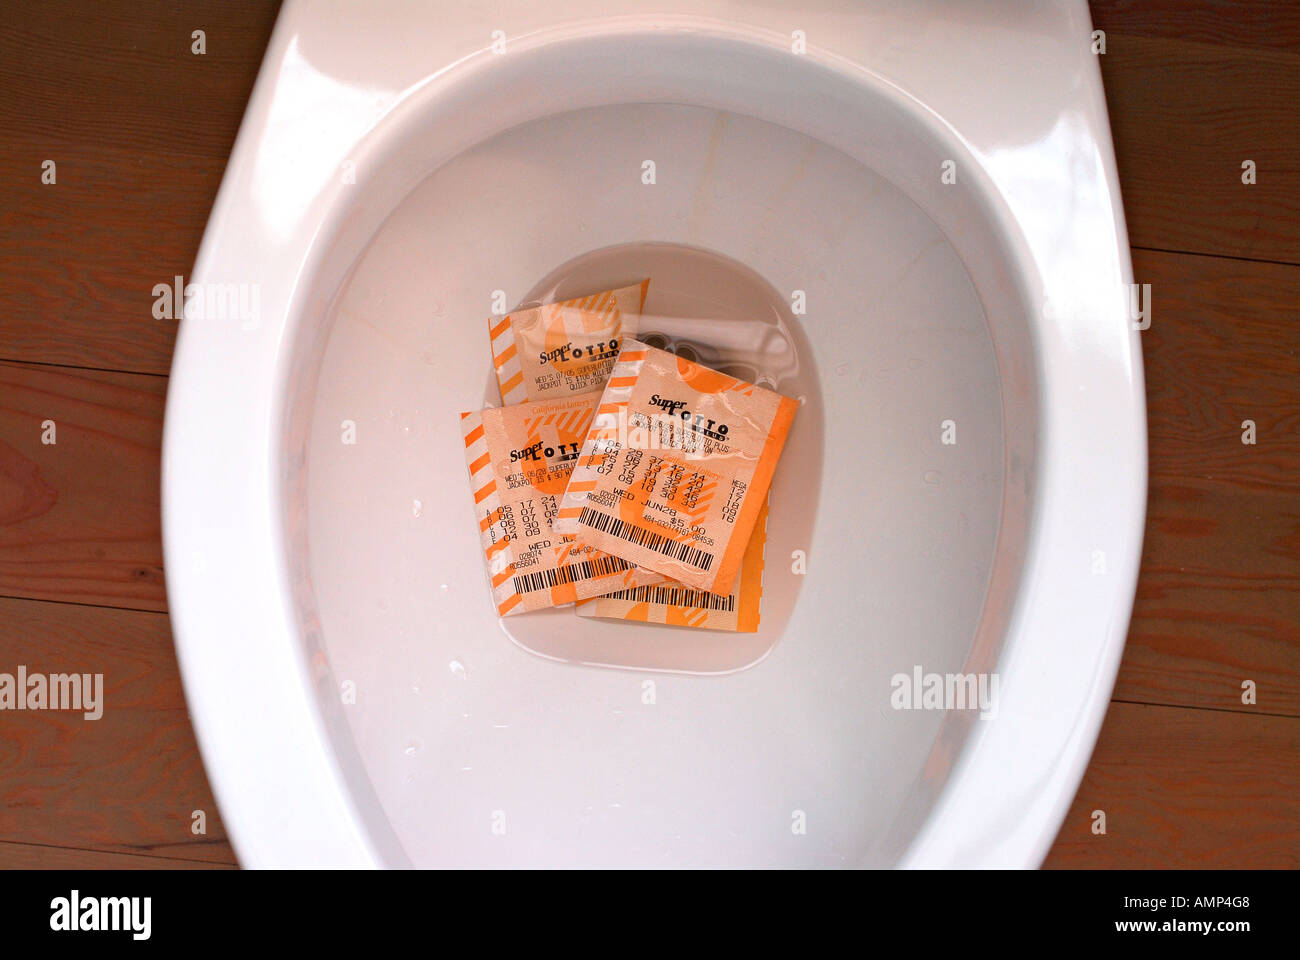 California ^superlotto ^lottery ^ticket down the toilet Stock Photo